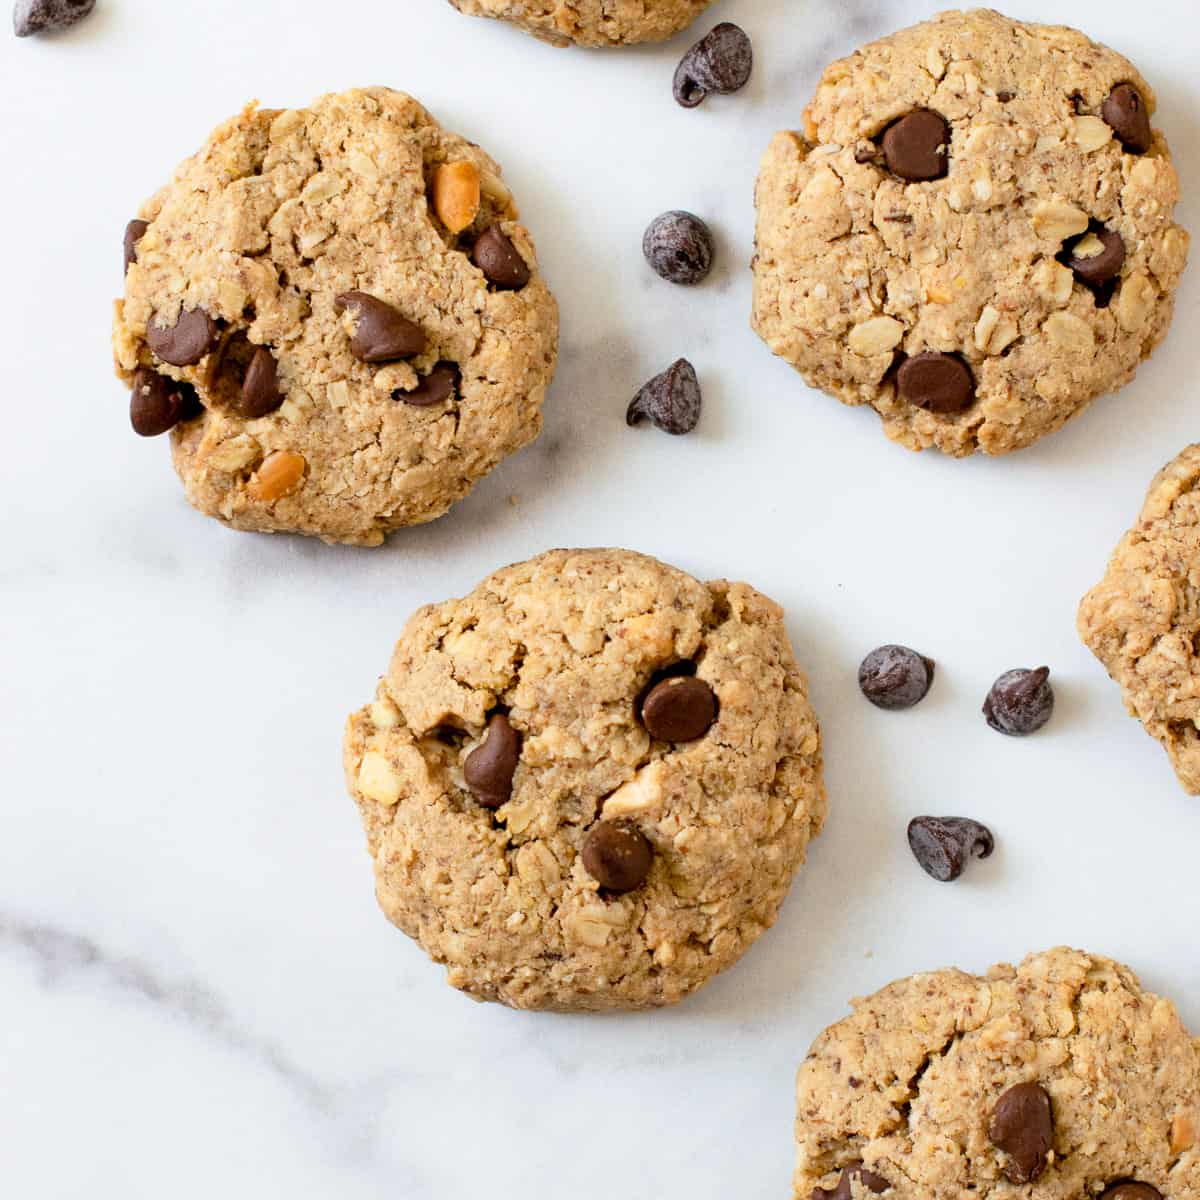 Peanut buttter oatmeal cookies on a white board